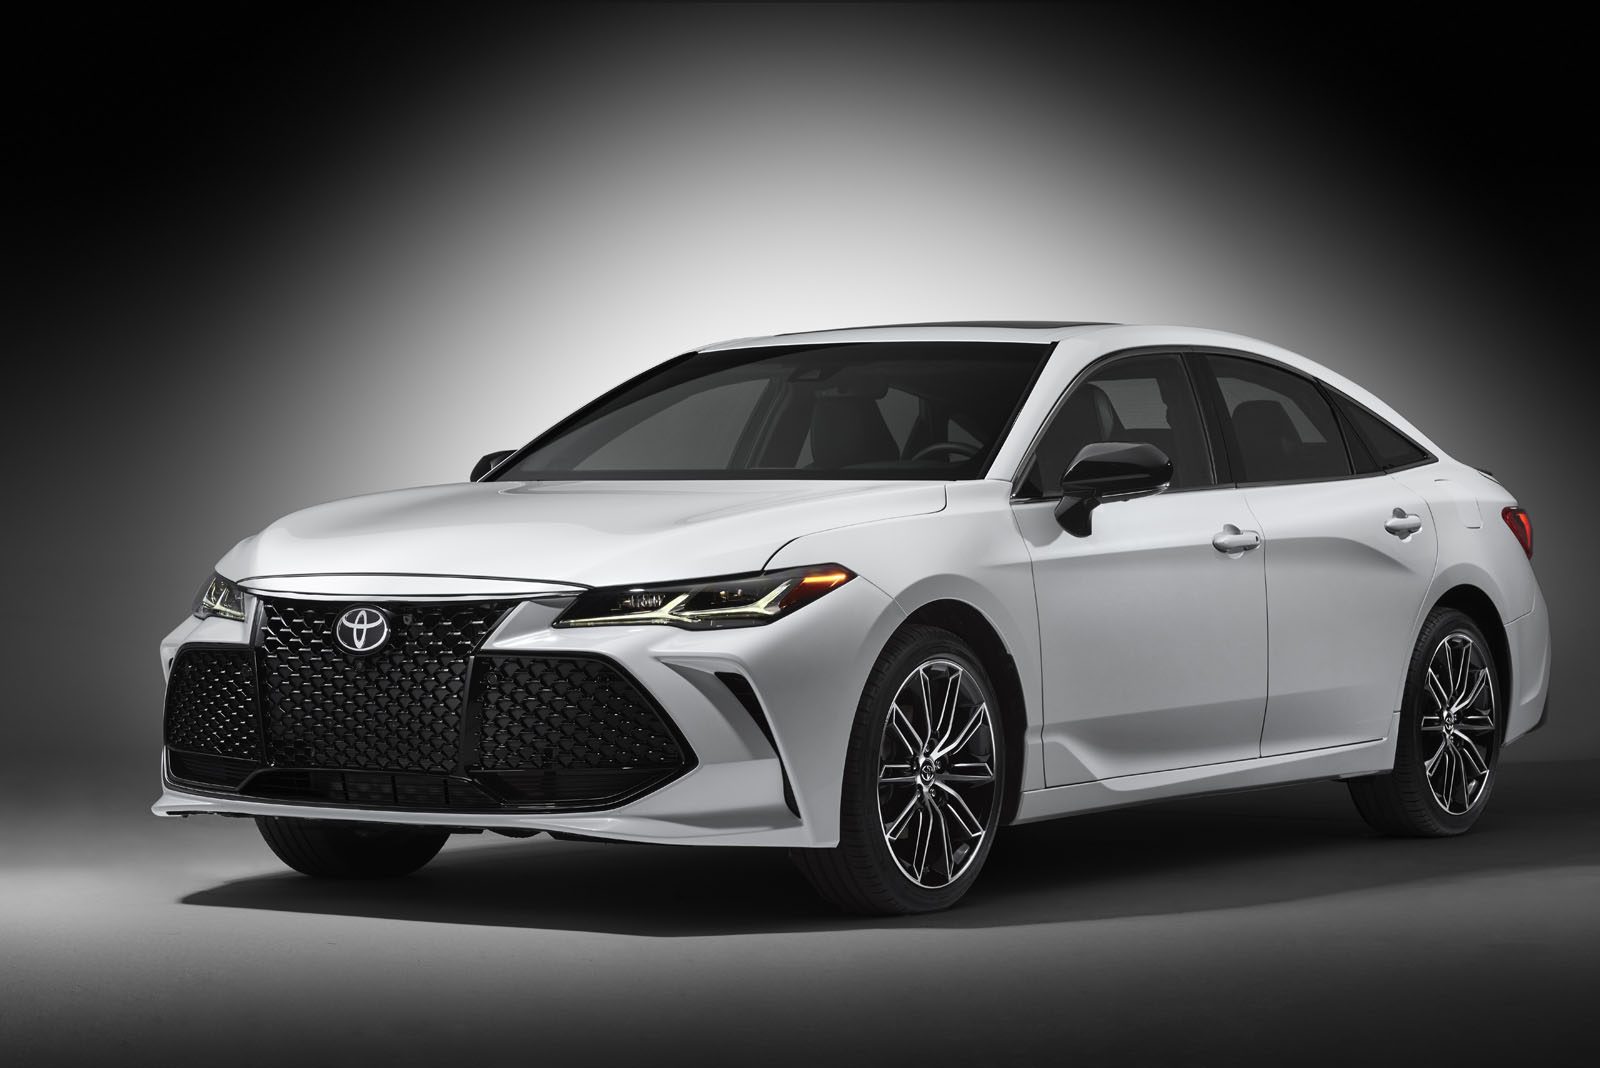 all new camry 2019 malaysia agya trd sportivo premium style and luxury toyota avalon